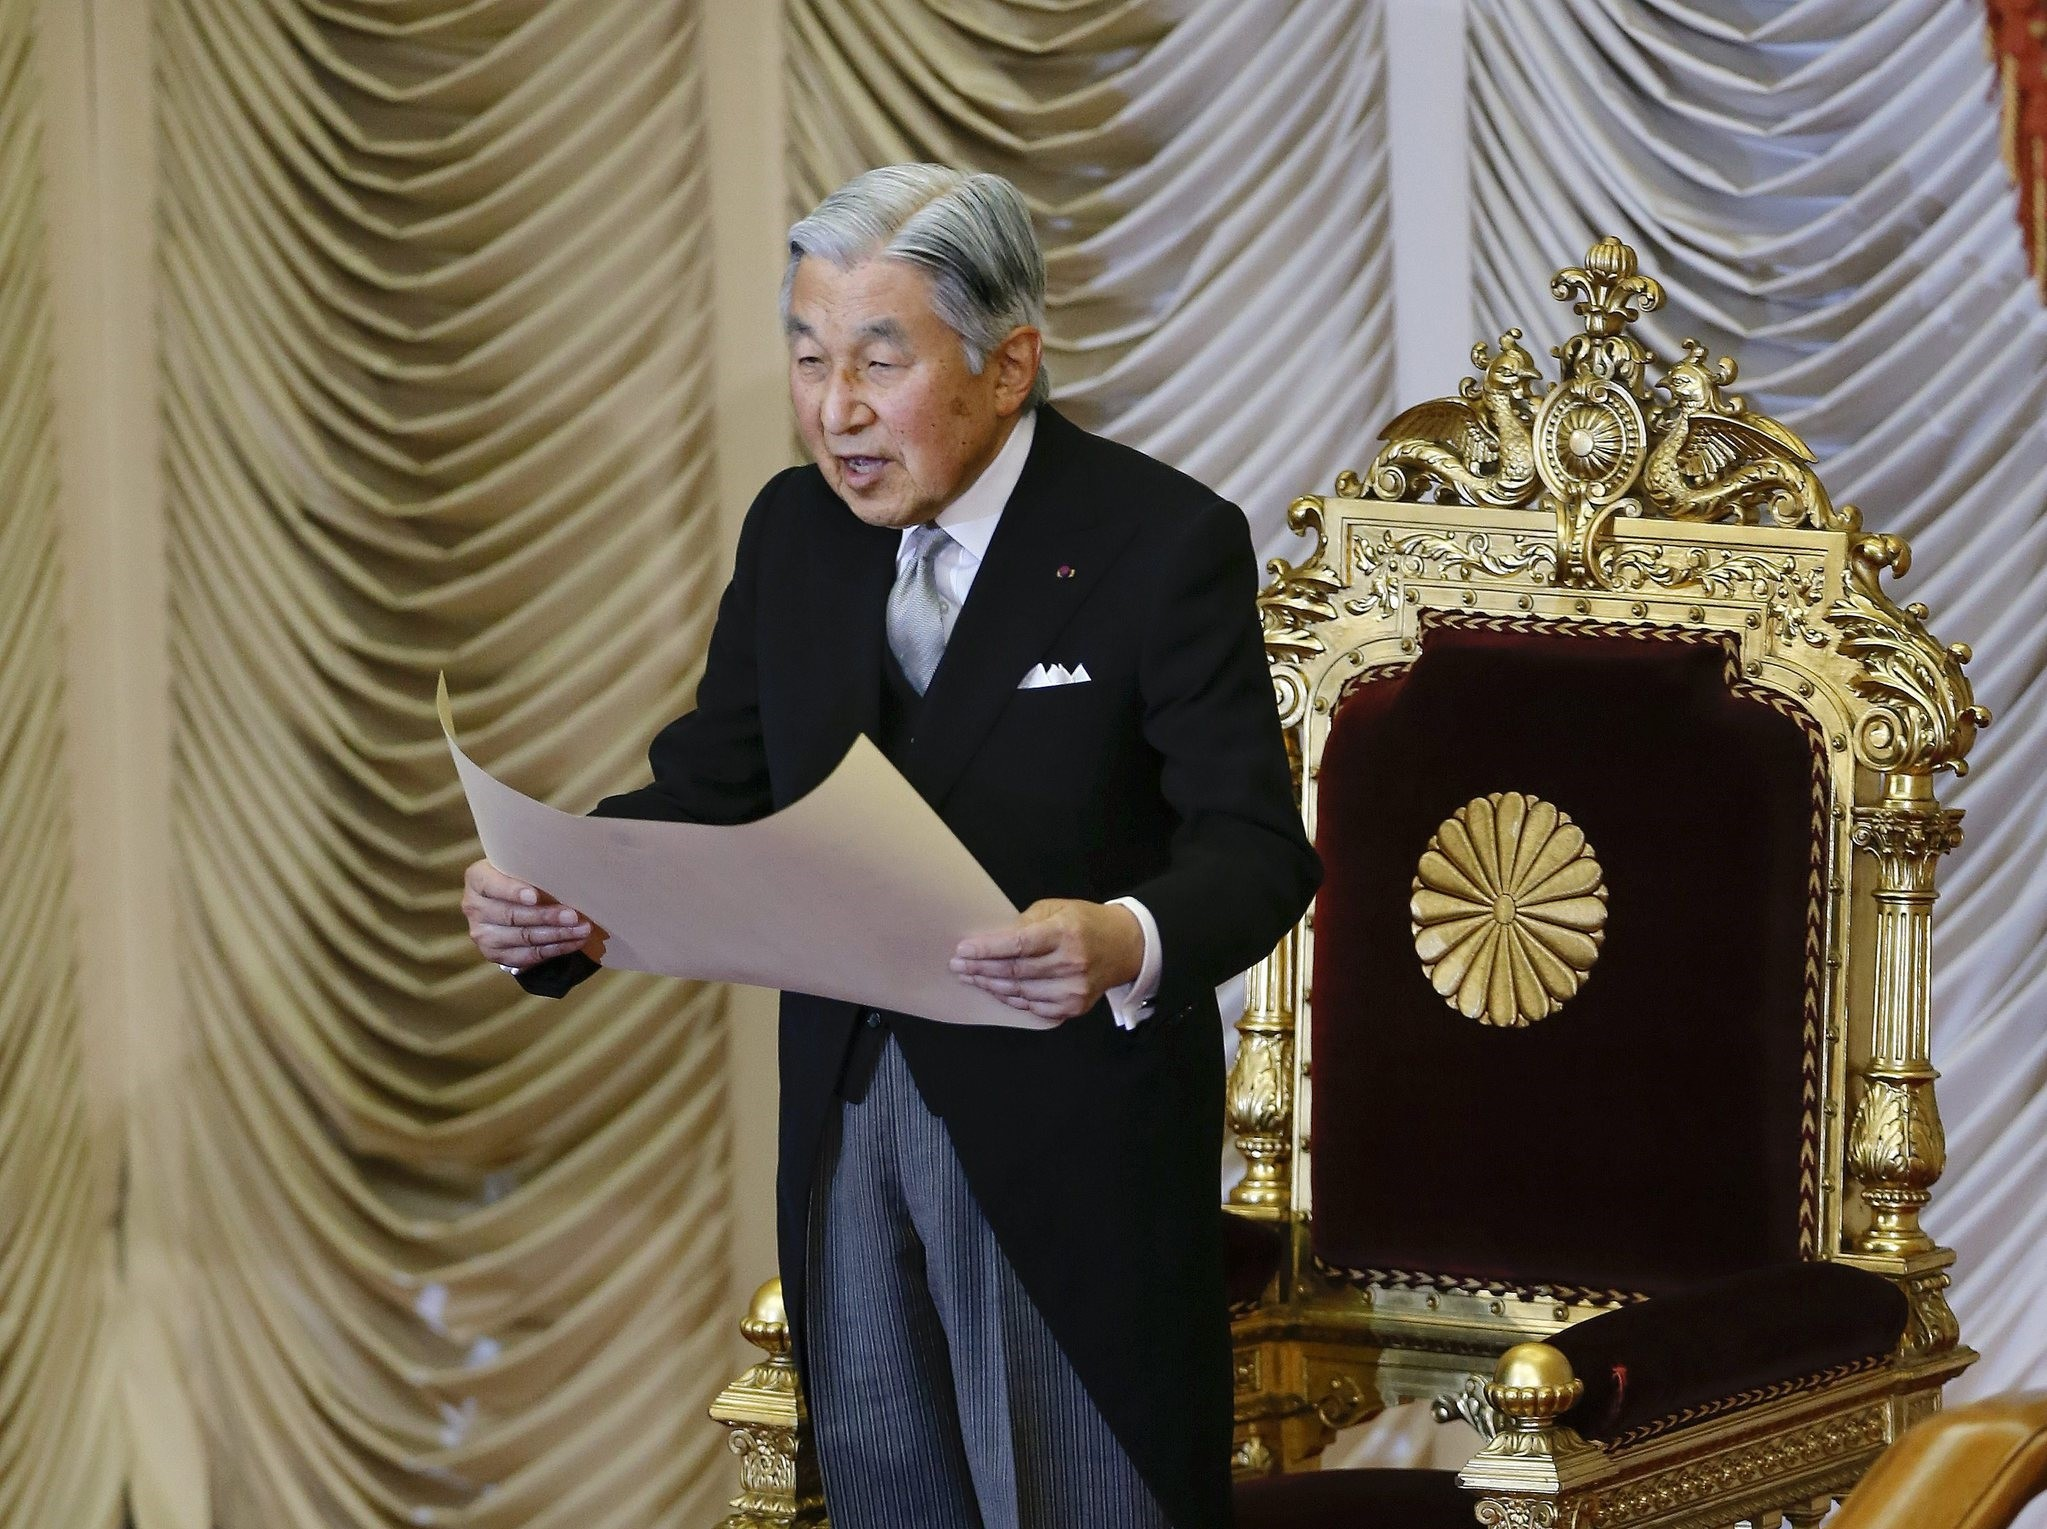 Japan's Emperor Akihito delivers a speech during the opening ceremony of a Diet session in Tokyo, Japan, 01 August 2016. (EPA Photo)